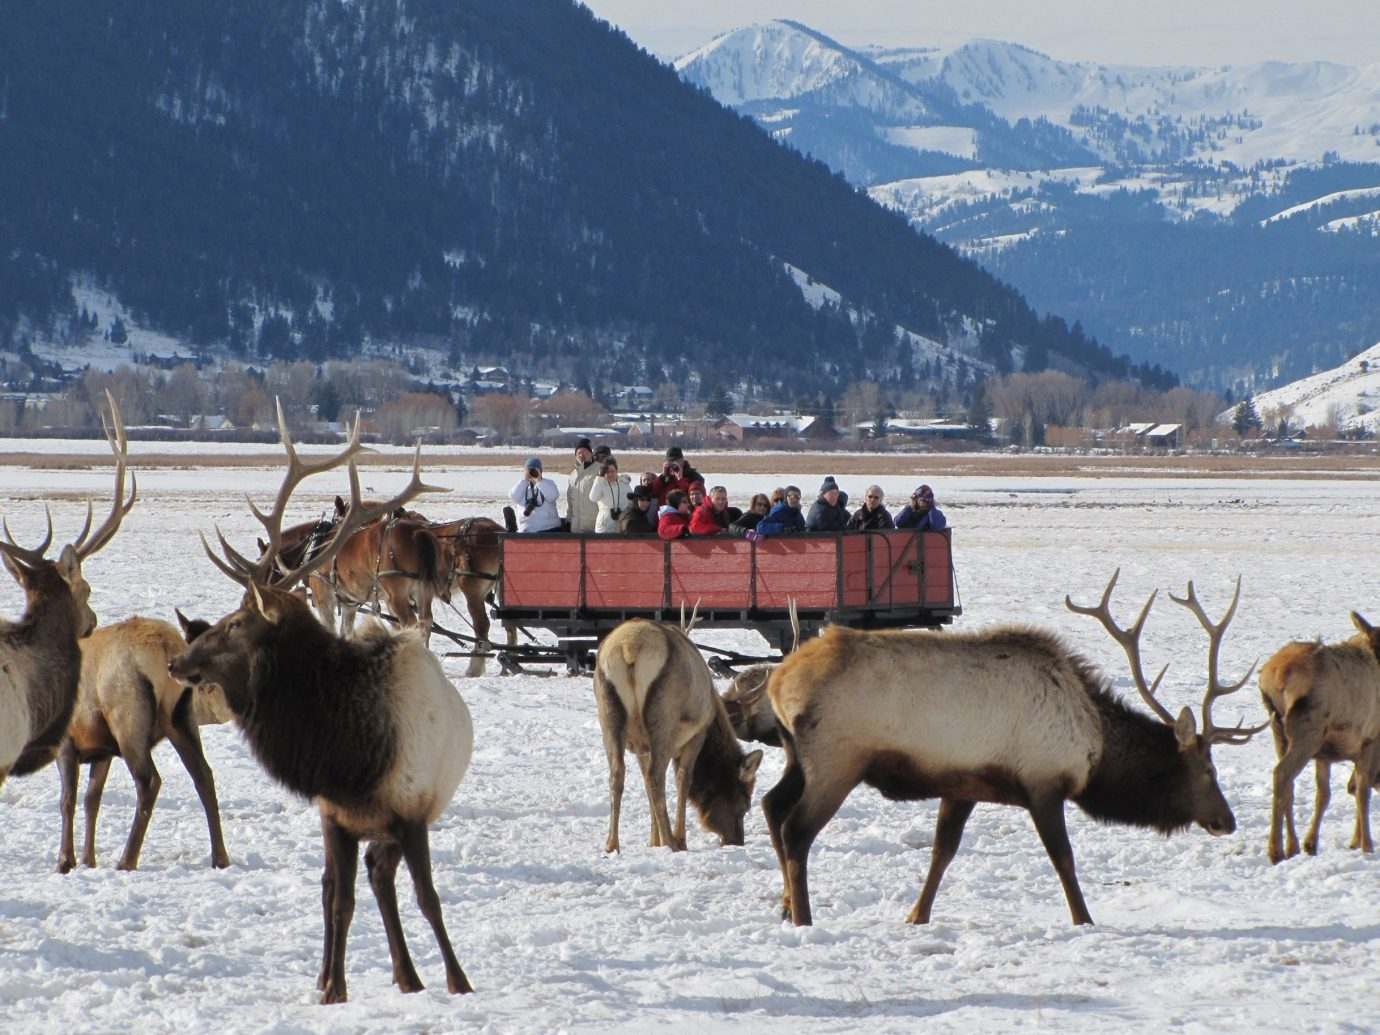 Offbeat Trip Ideas mountain outdoor ground mammal animal deer snow elk Winter herd Wildlife reindeer season group pack animal tundra cattle